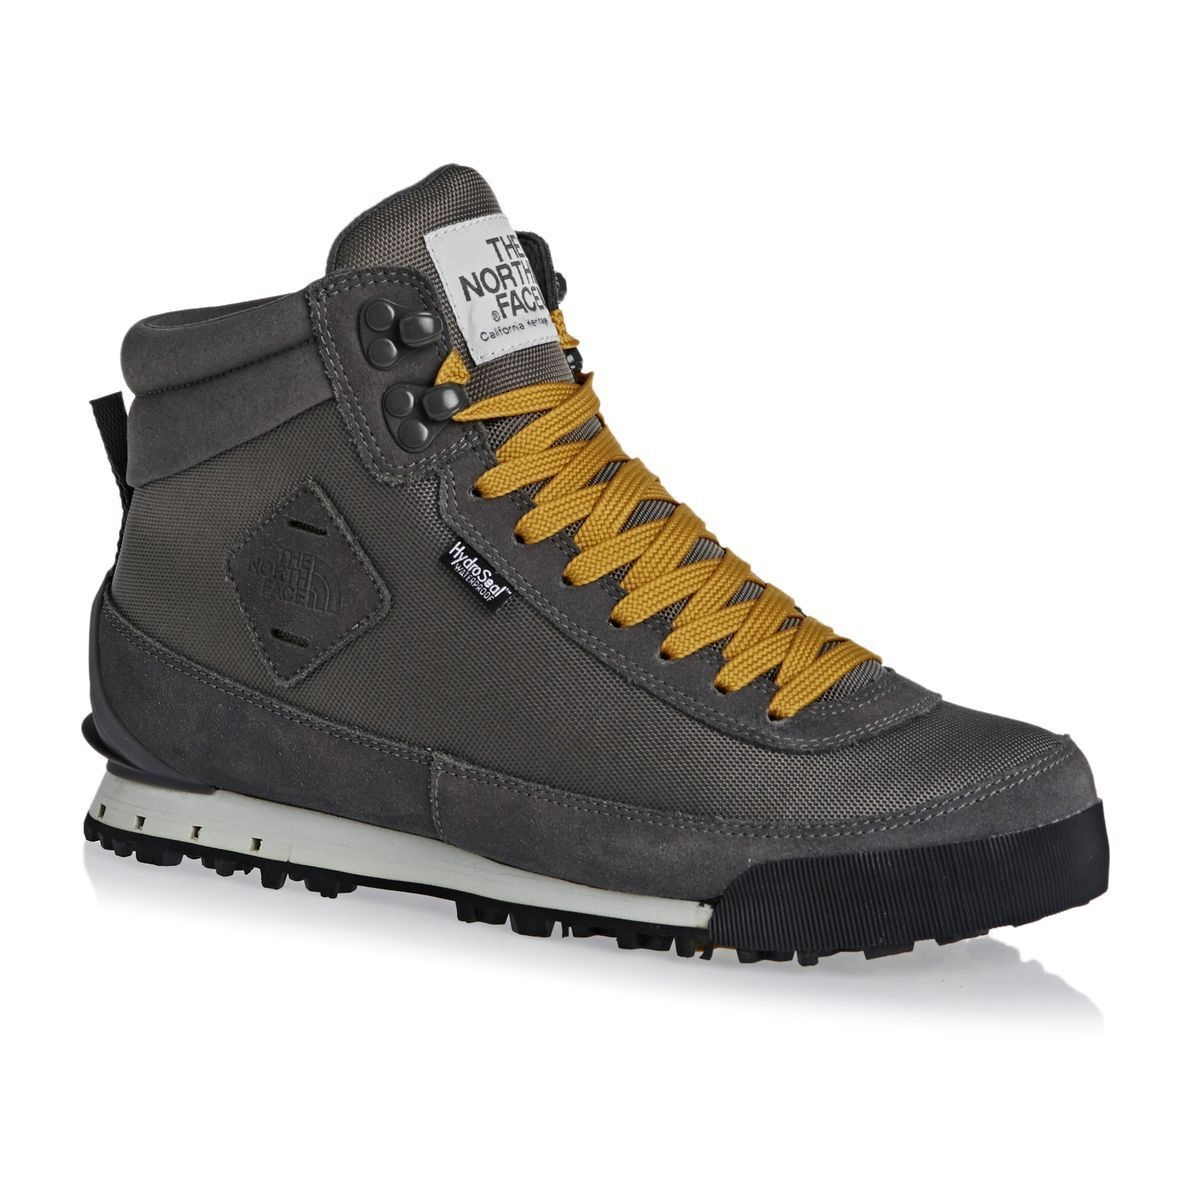 5c0aaf65e Women's The North Face Boots - The North Face Back-2-Berk Boots ...